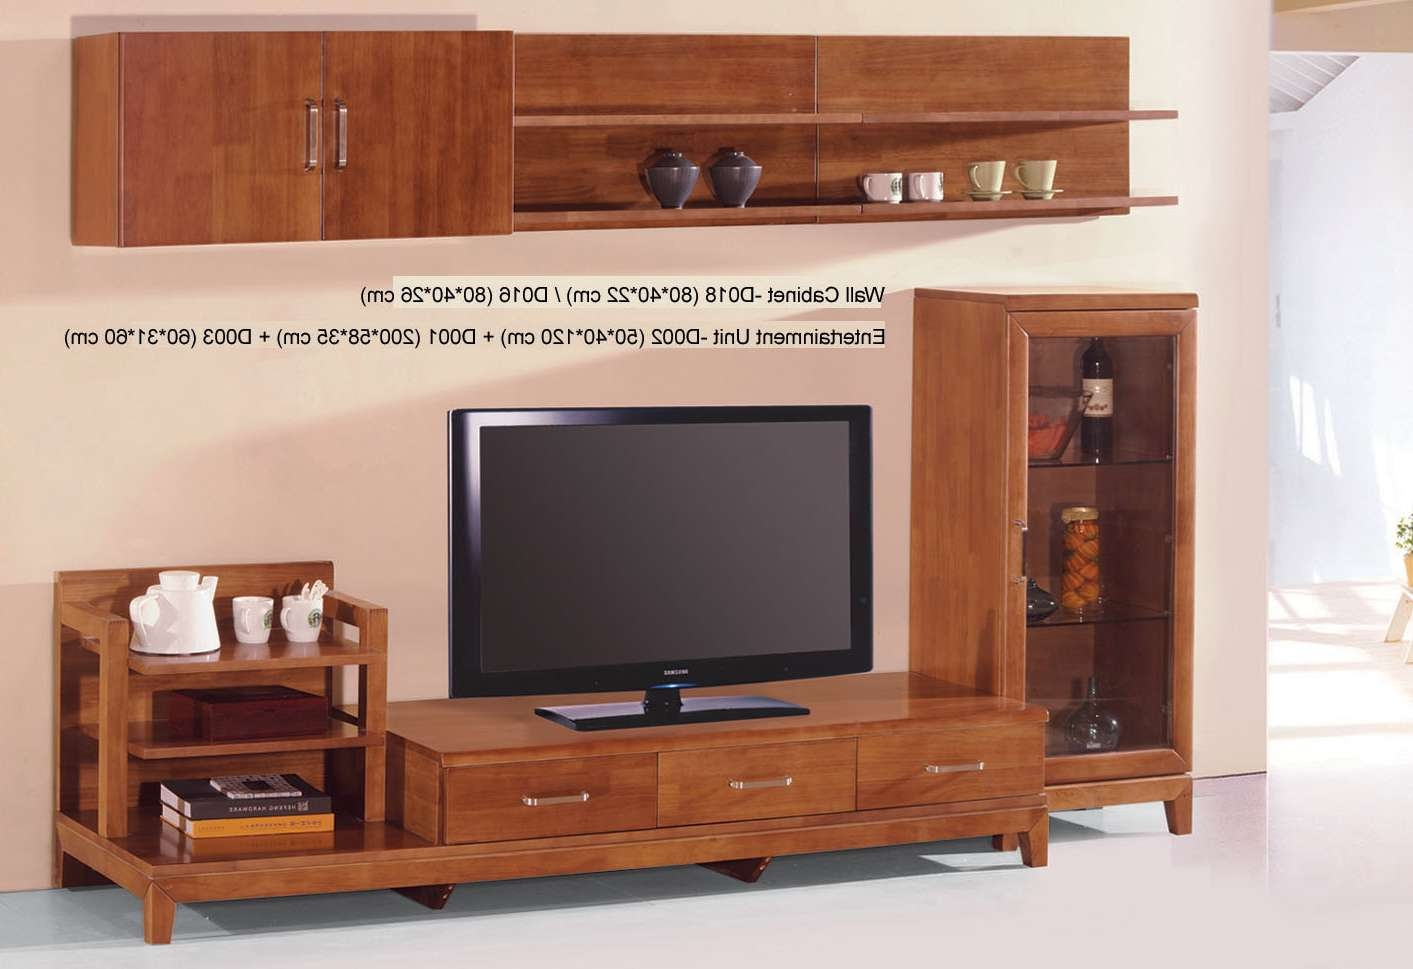 Country Style Tv Stand Unit Idea In Honey Oak Finish With Three Within Country Style Tv Cabinets (View 9 of 20)